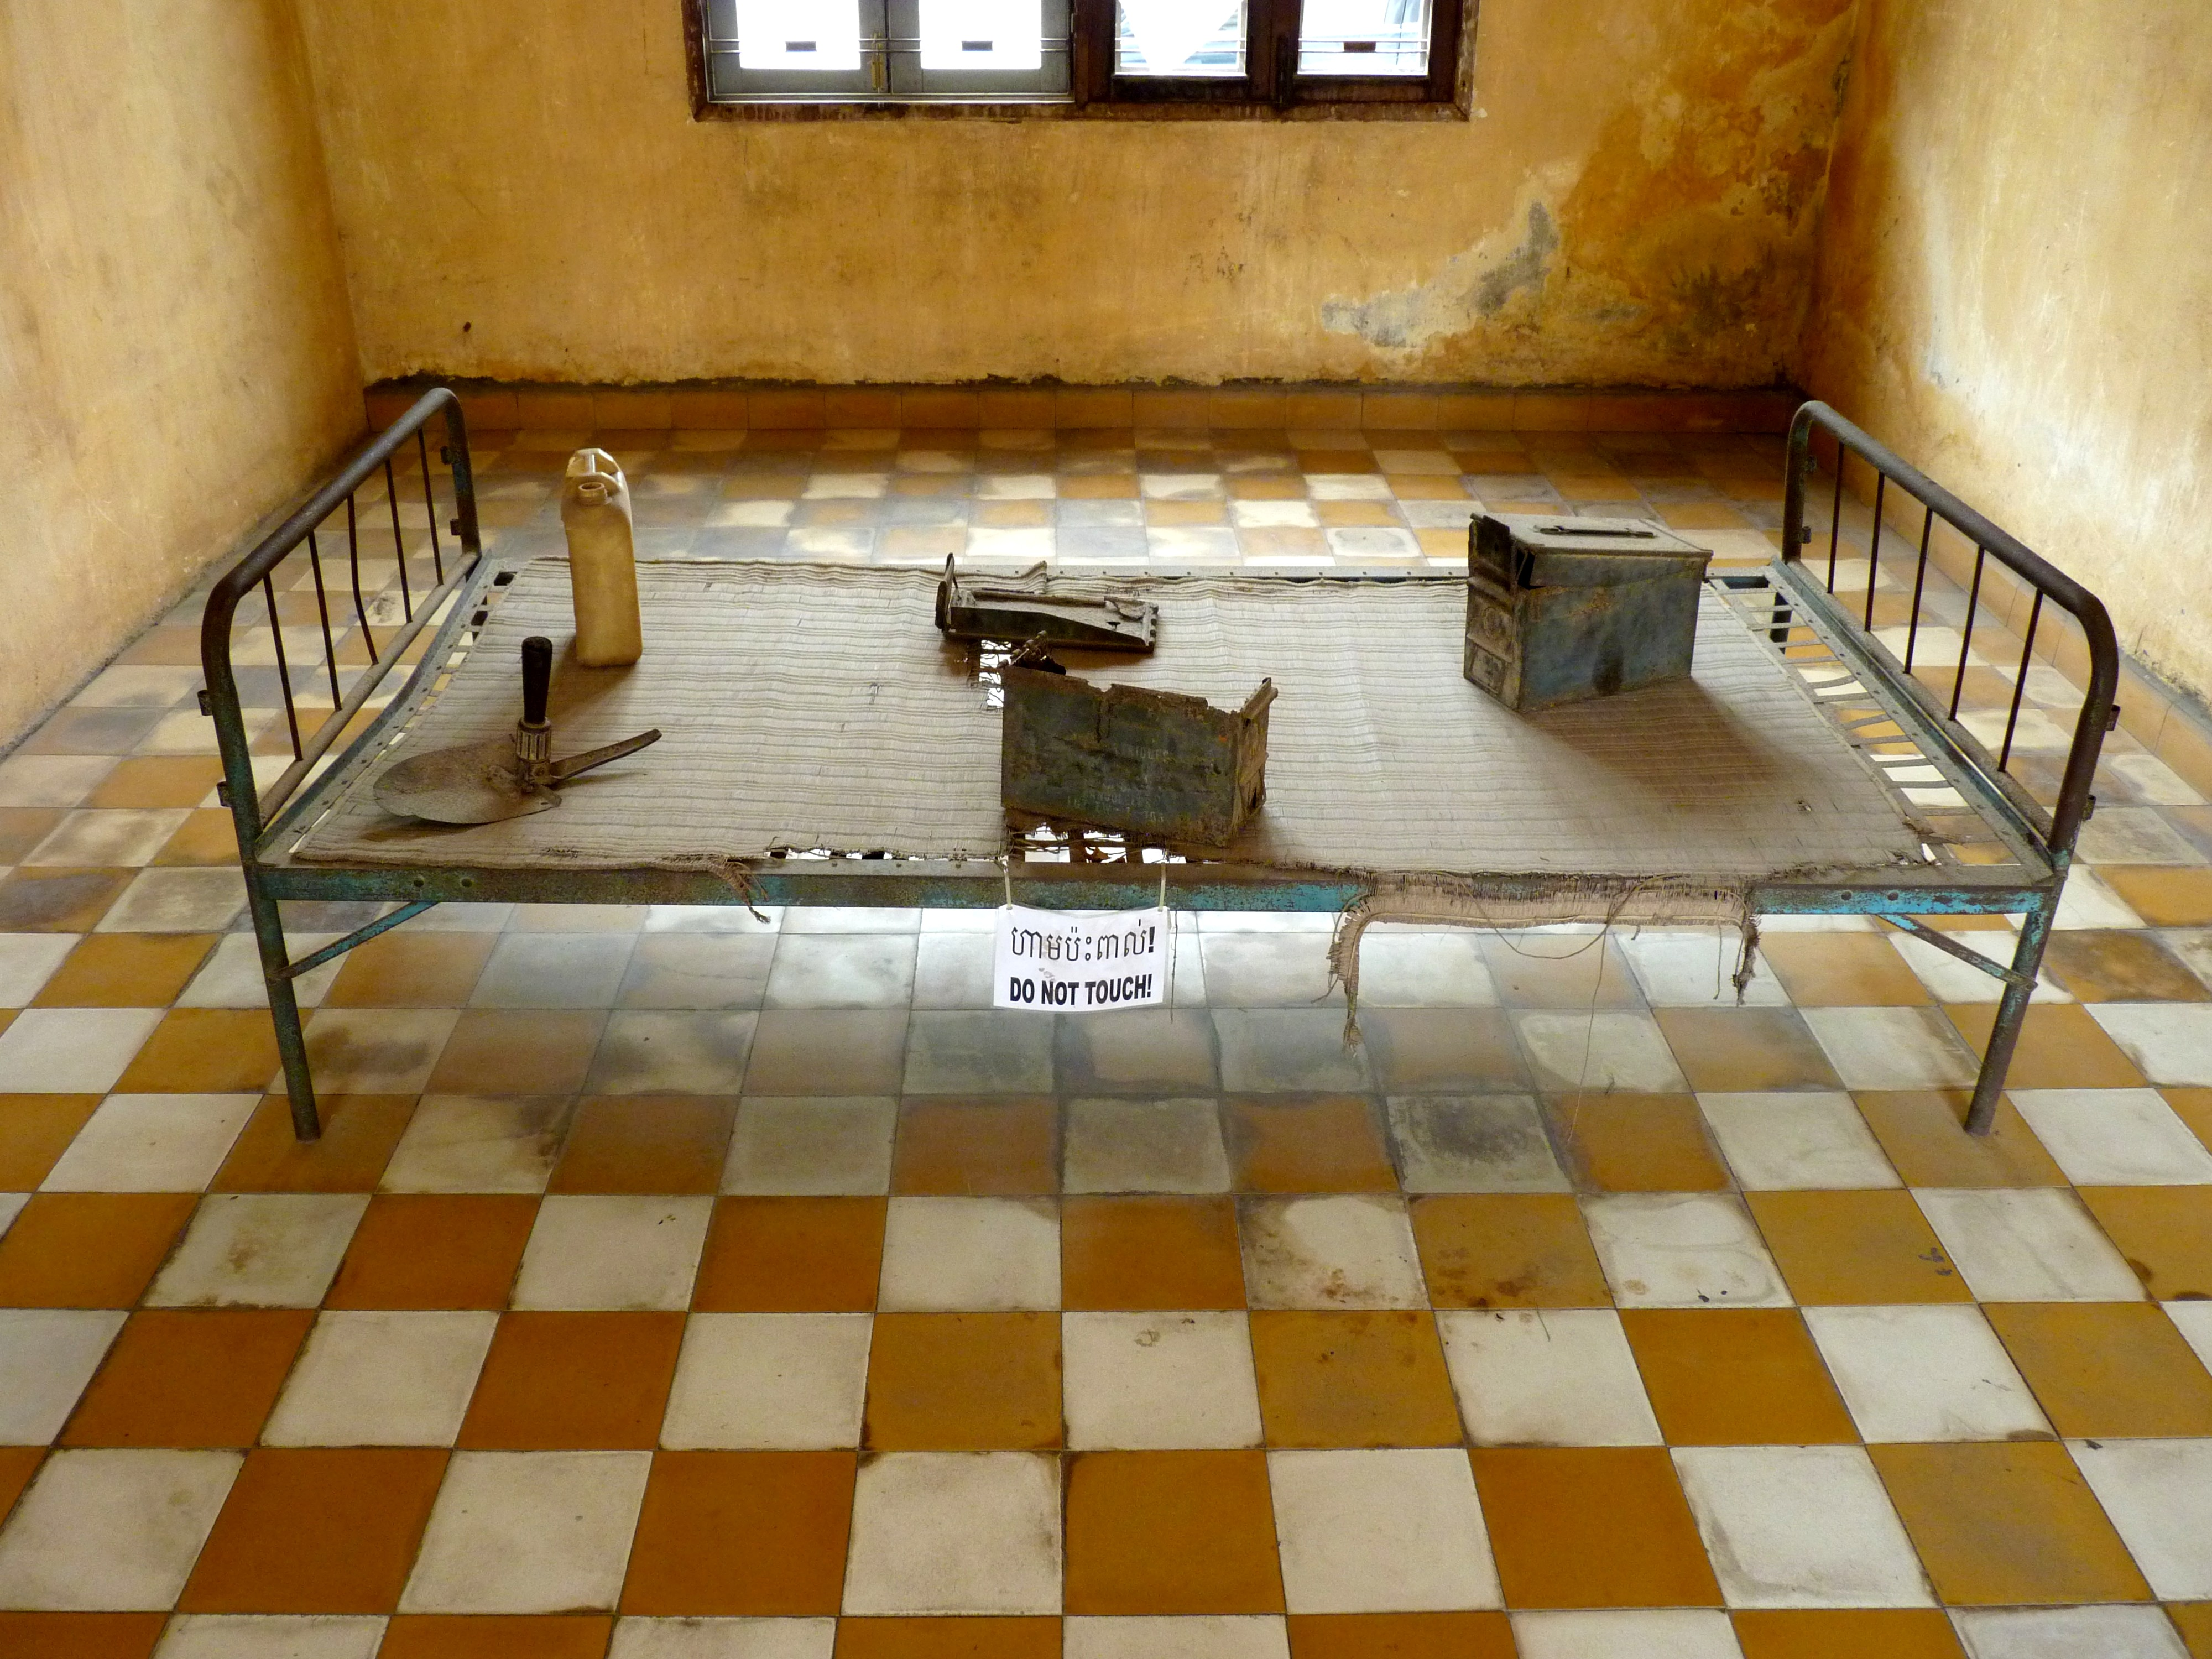 File:Iron bed in Tuol Sleng prison.JPG - Wikimedia Commons